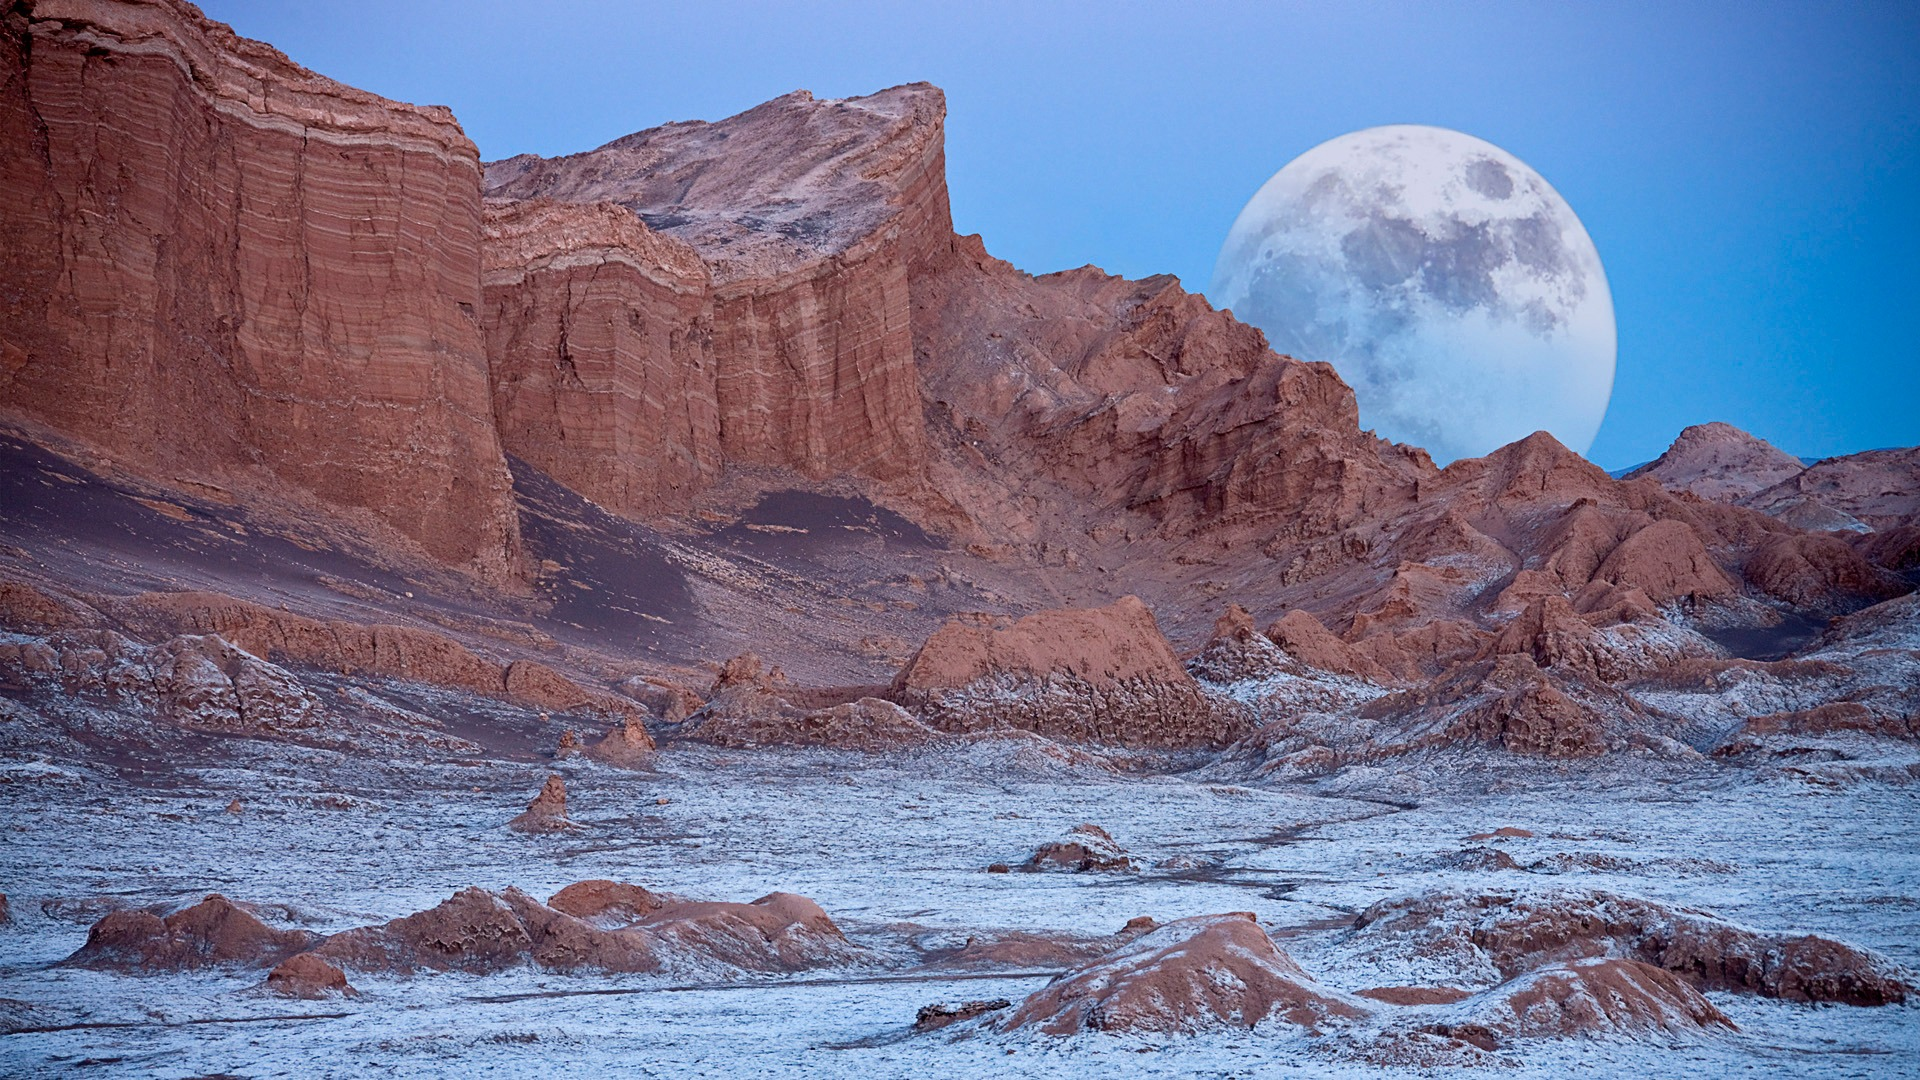 chile valley of the moon atacama desert-natural landscape hd